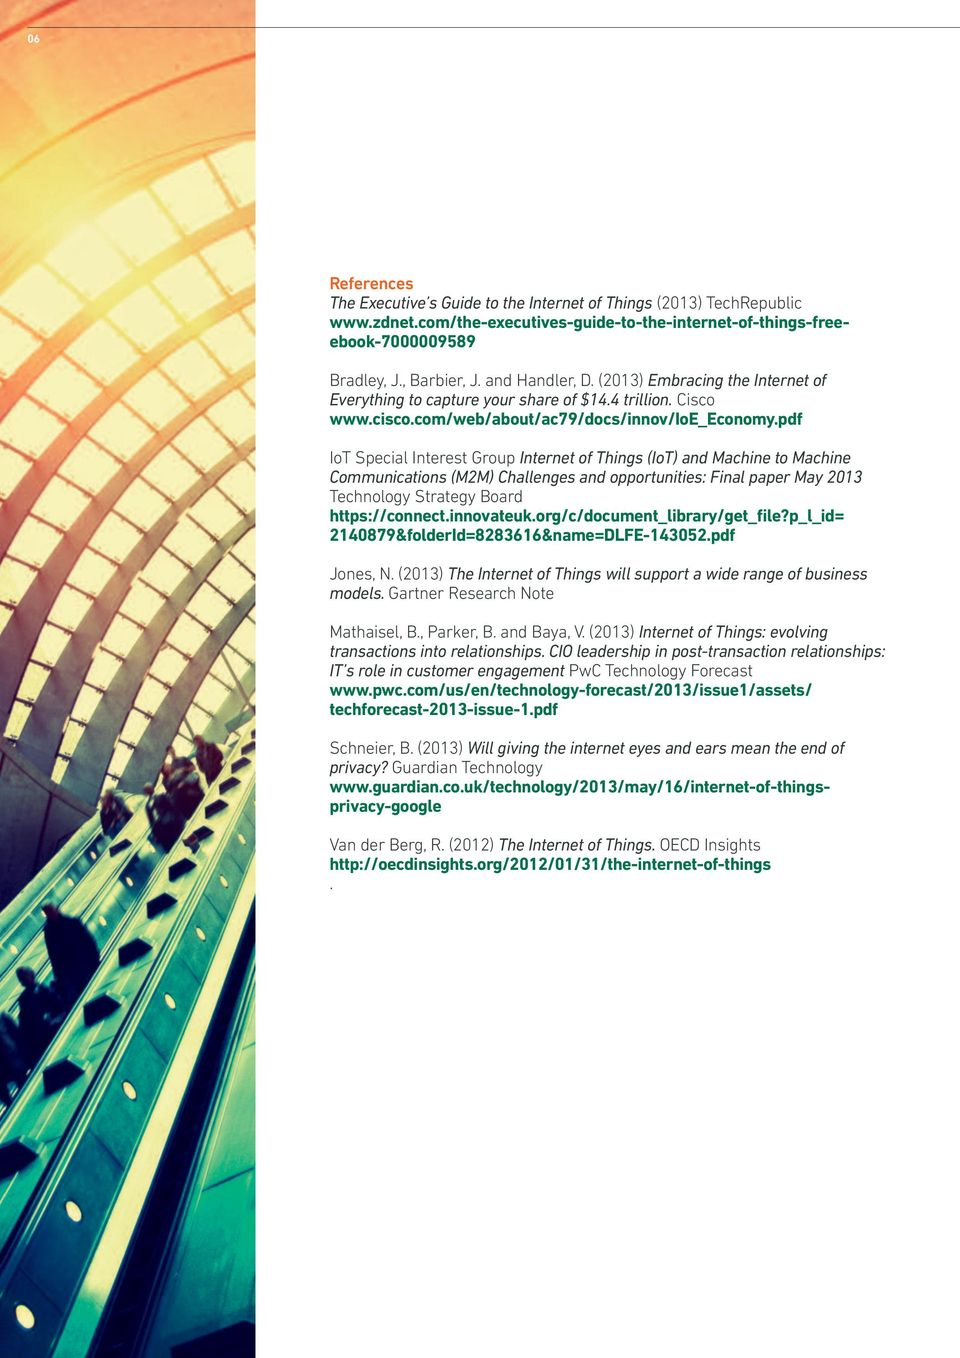 pdf IoT Special Interest Group Internet of Things (IoT) and Machine to Machine Communications (M2M) Challenges and opportunities: Final paper May 2013 Technology Strategy Board https://connect.